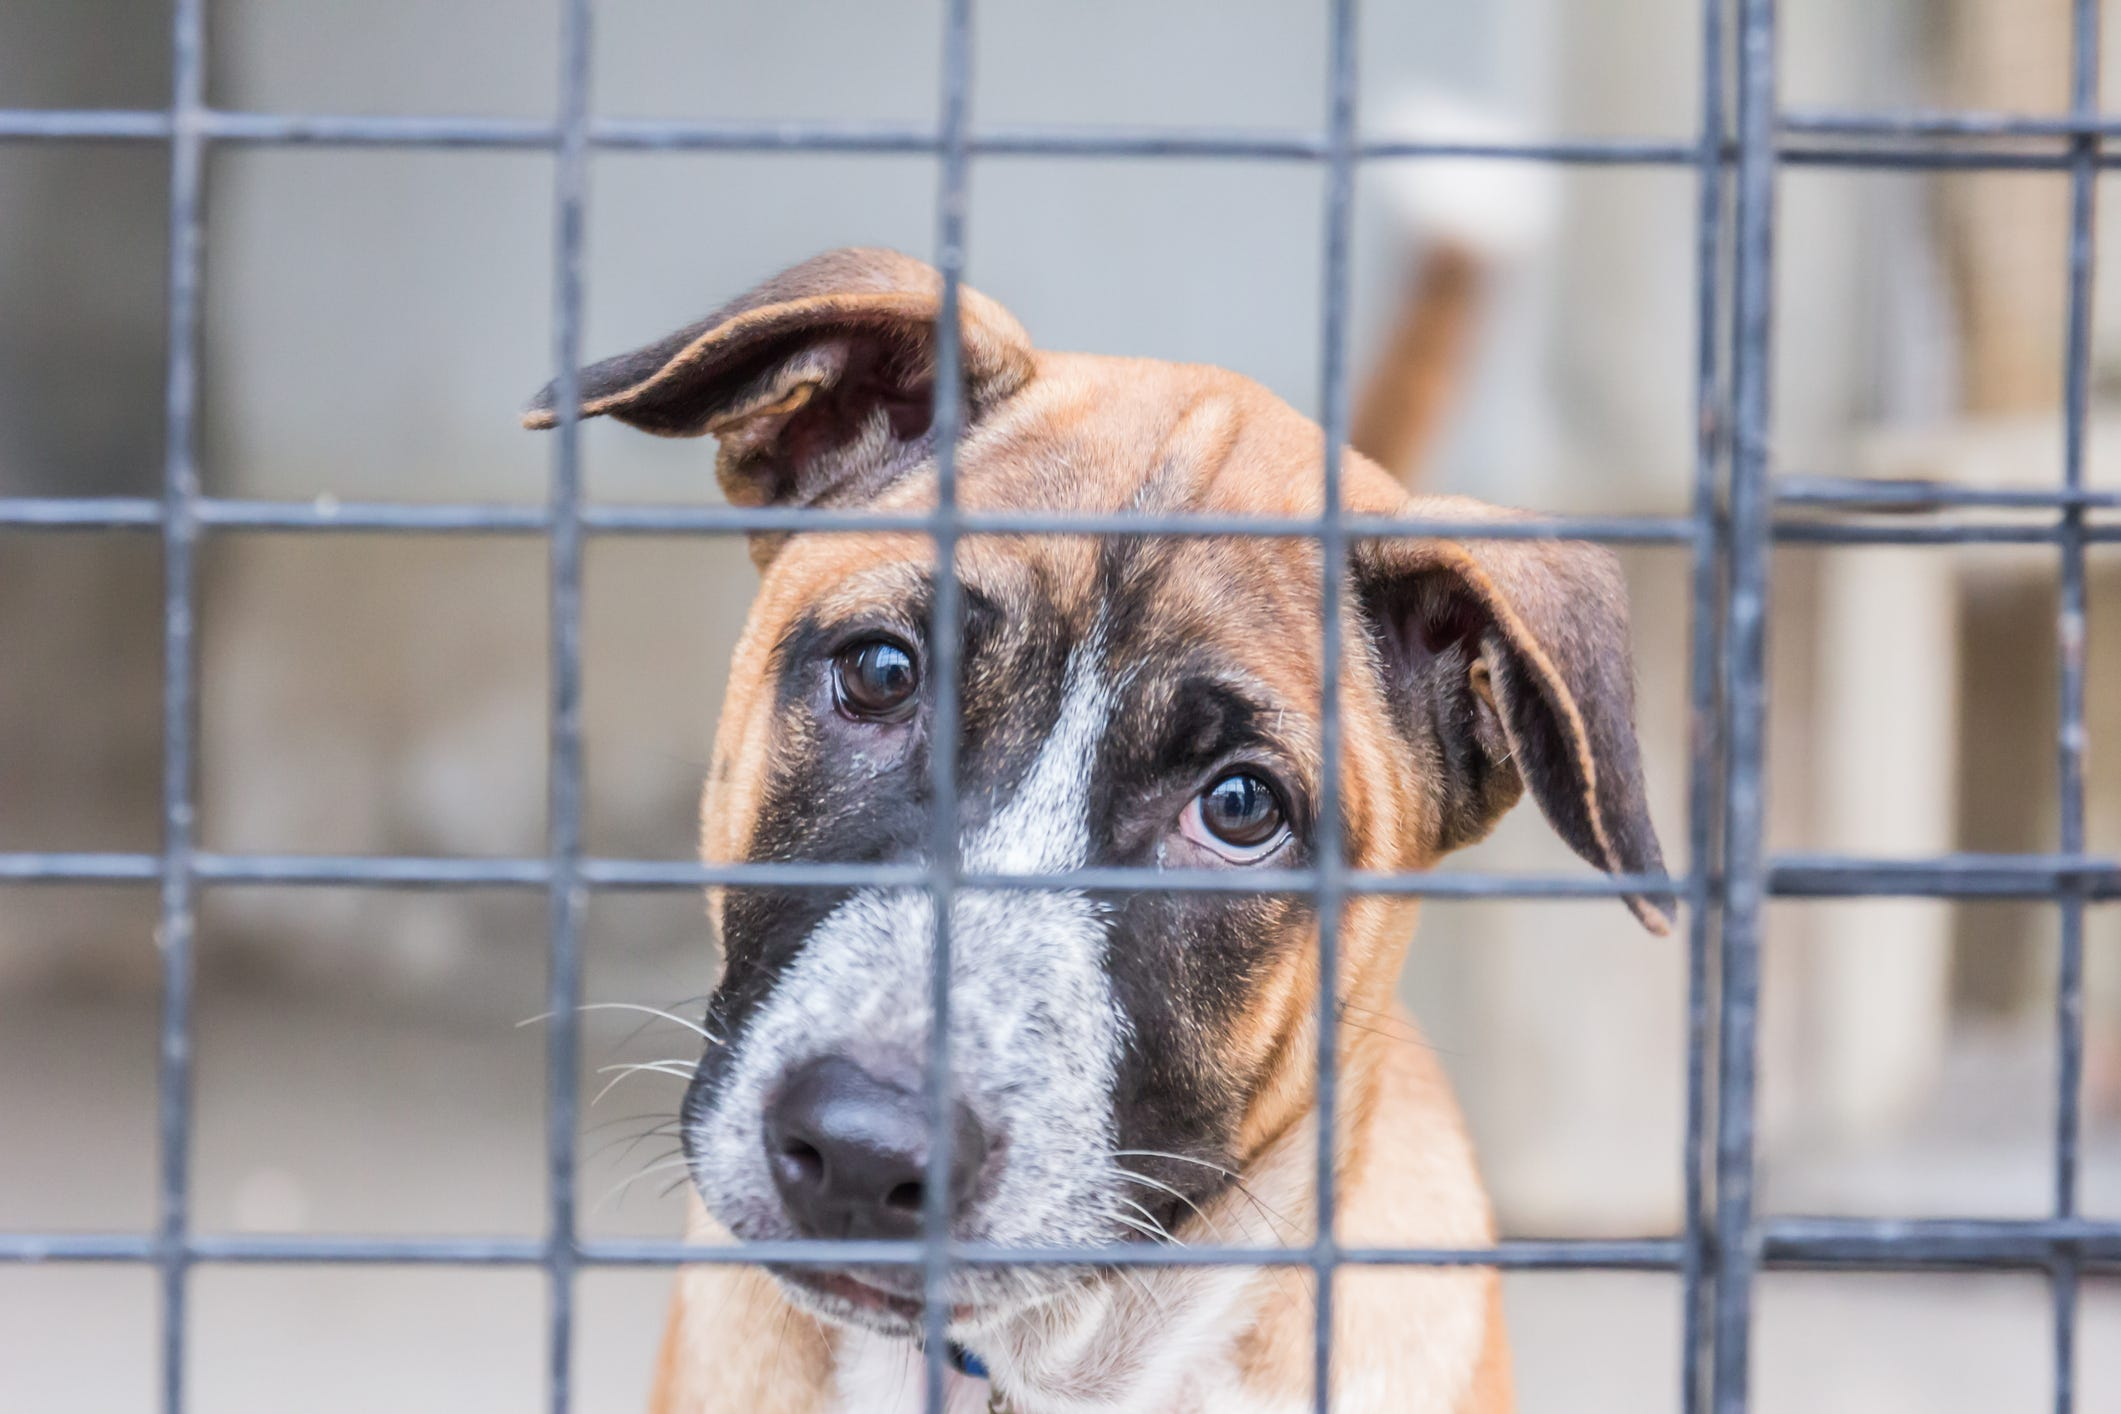 Pet Adoption Fees Just $25 On May 4 For 'Empty The Shelters Day'